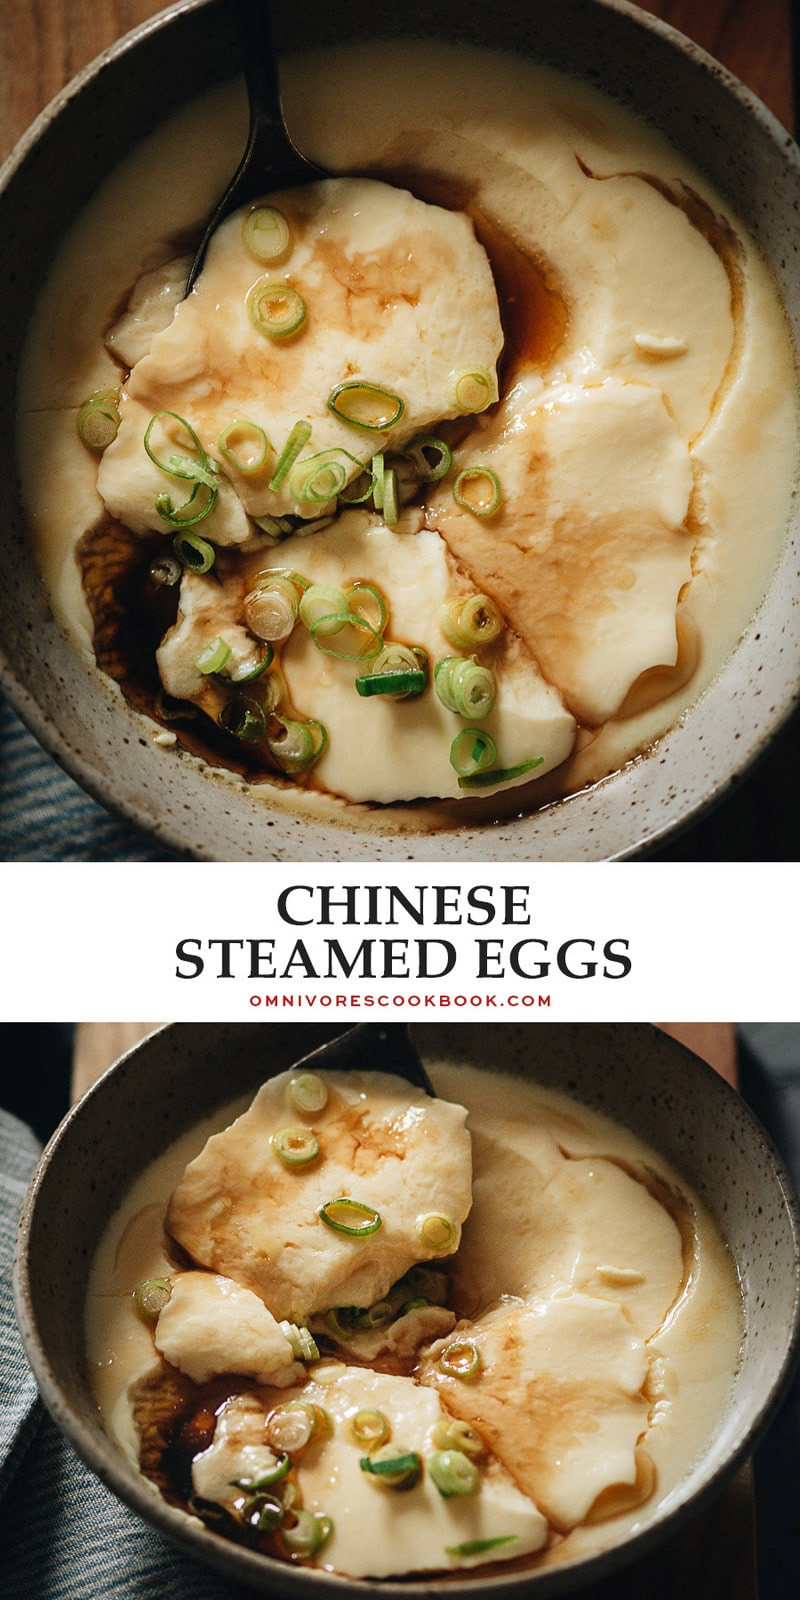 These homestyle Chinese steamed eggs give you a new way to enjoy one of the most versatile proteins there is, with their simple flavor and smooth, silky texture that you'll love. {Gluten-Free}